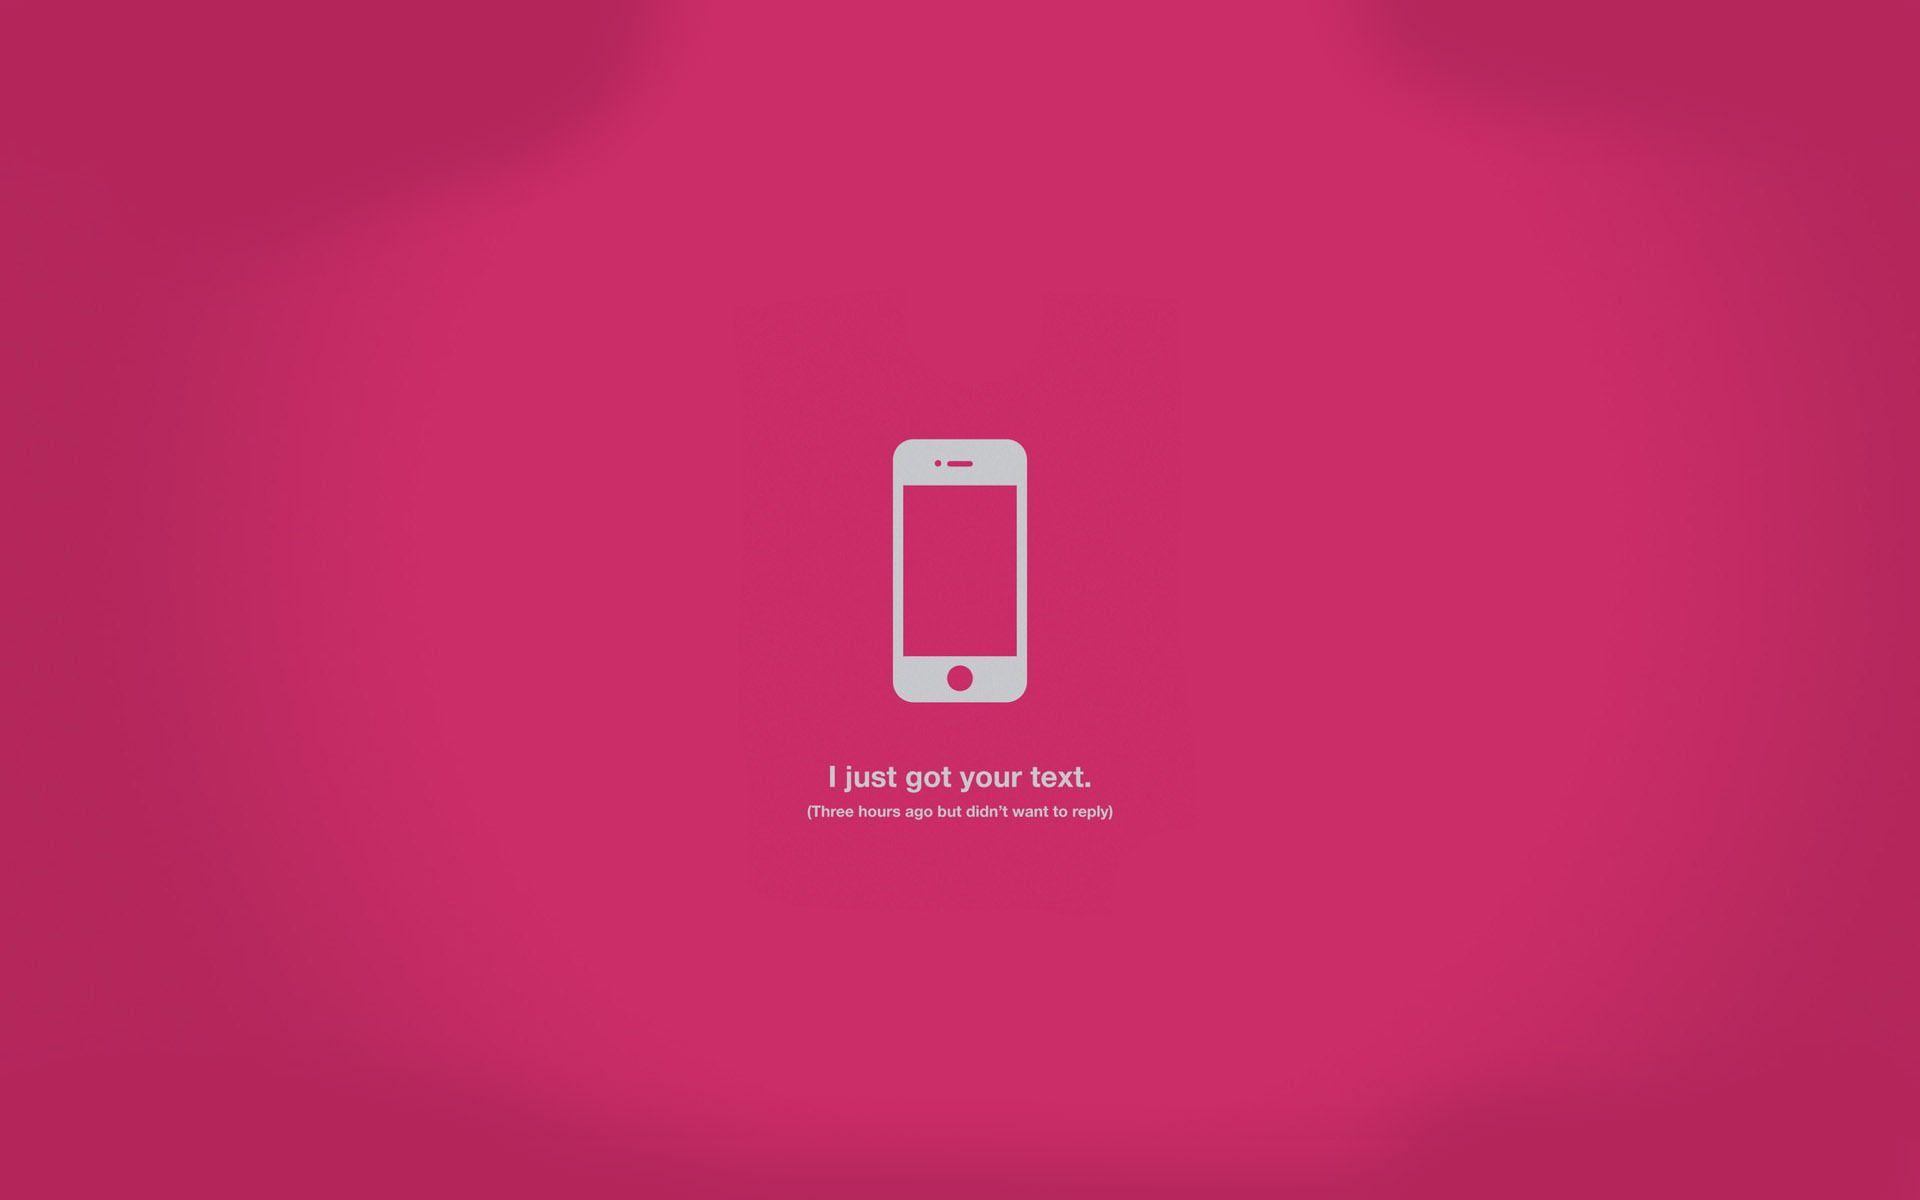 Wallpapers For Text Messages